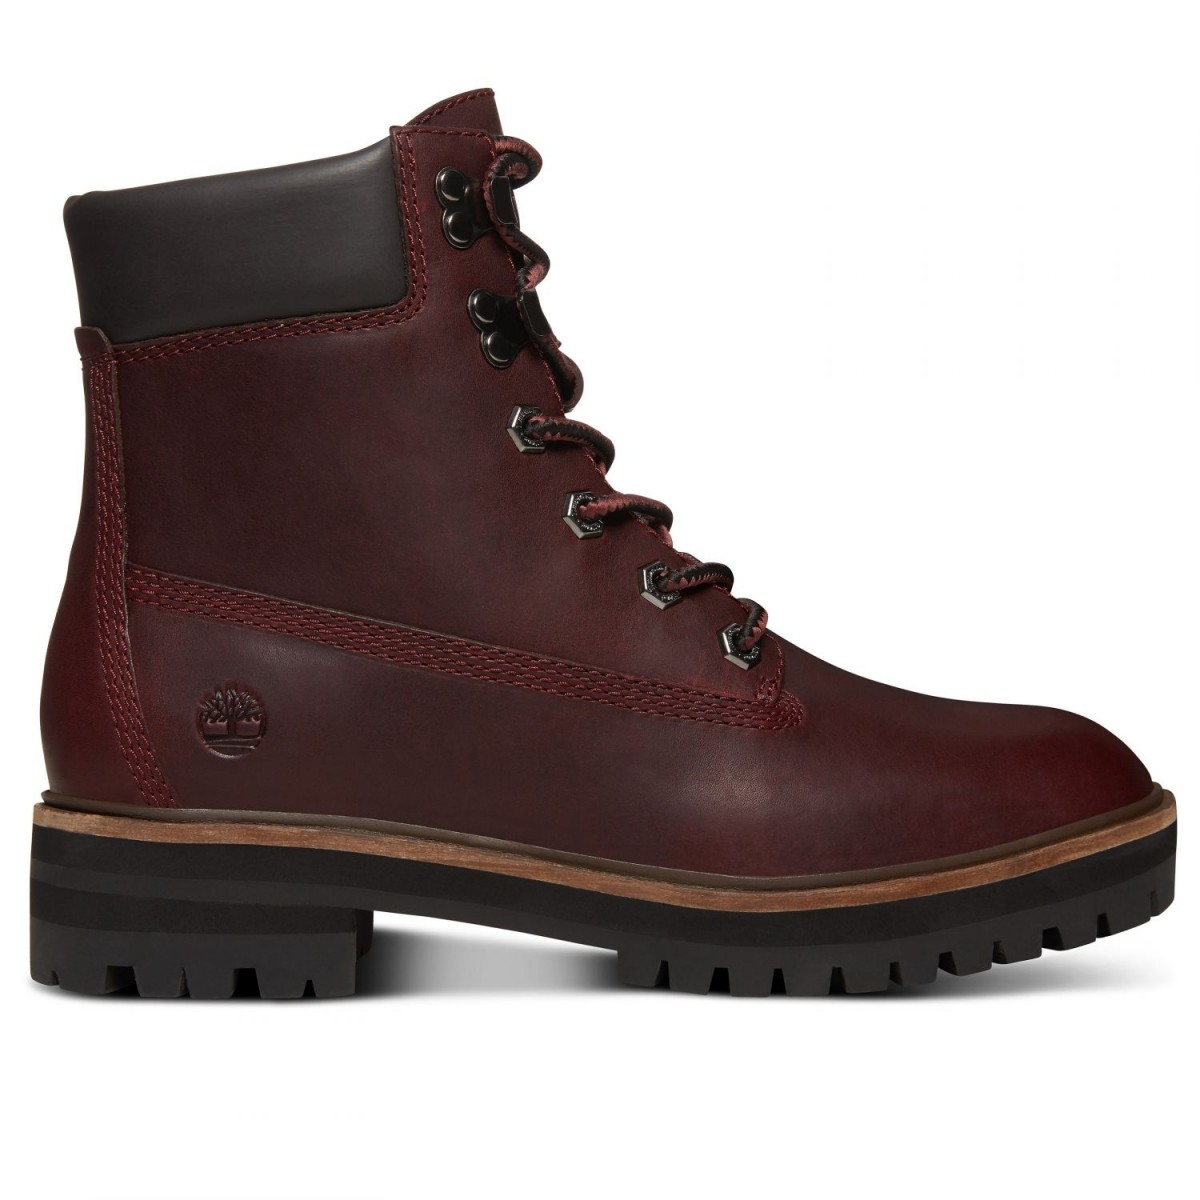 Timberland London Square 6-Inch Boot